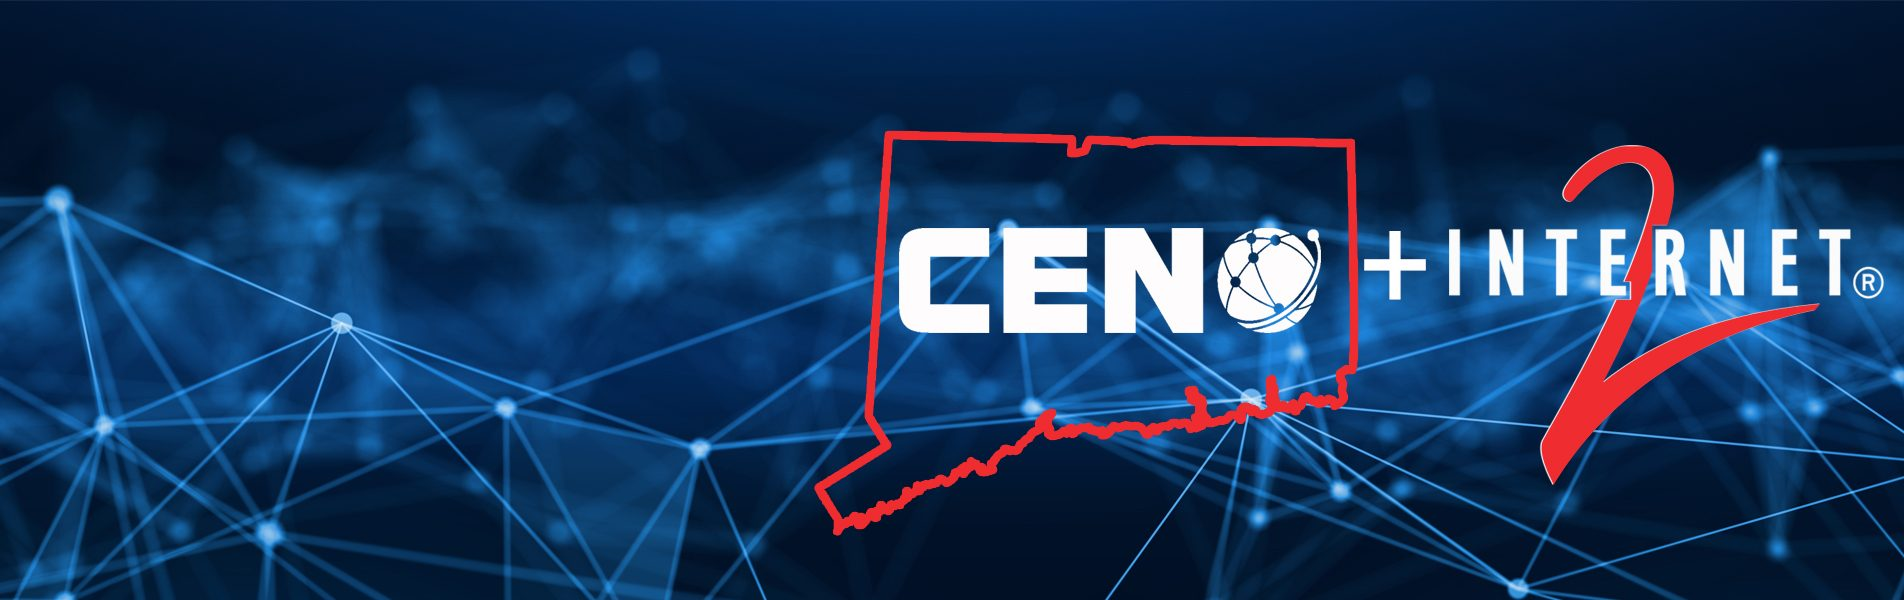 CEN logo and Internet2 logo